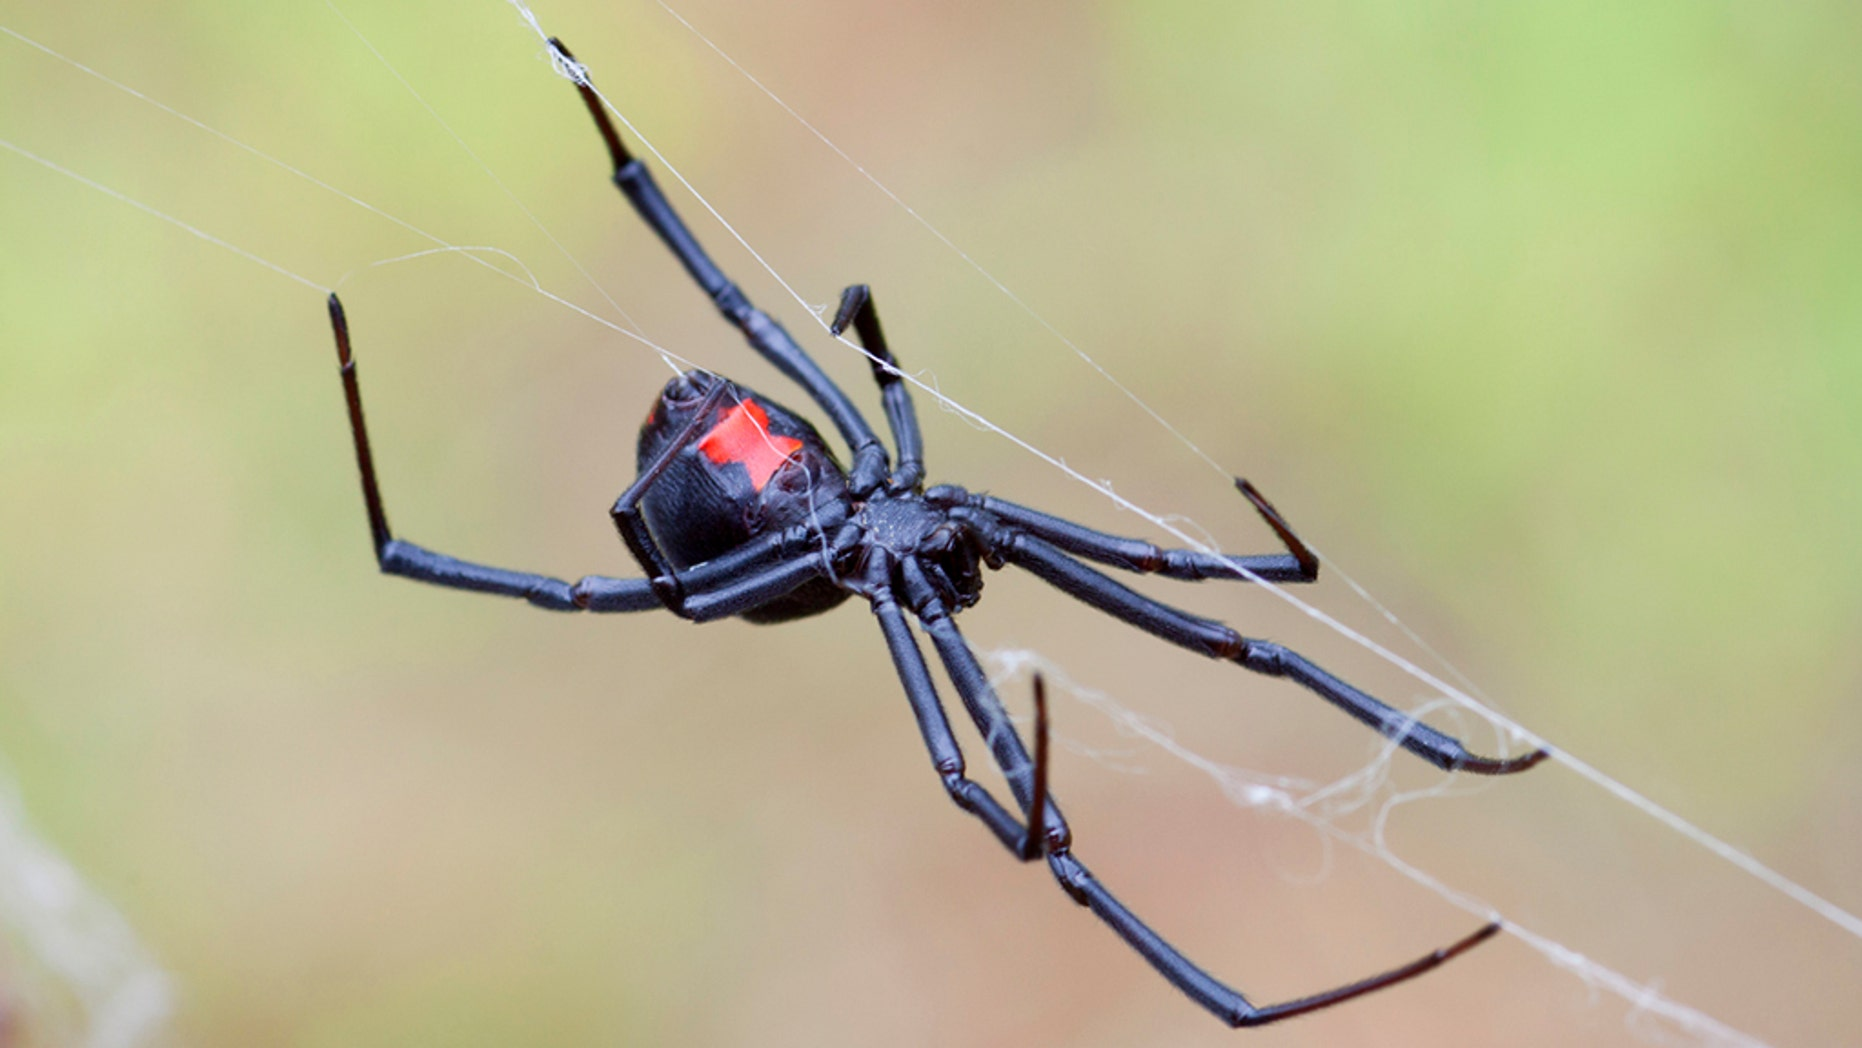 Man tries to kill spiders with blowtorch, sets parents' home on fire